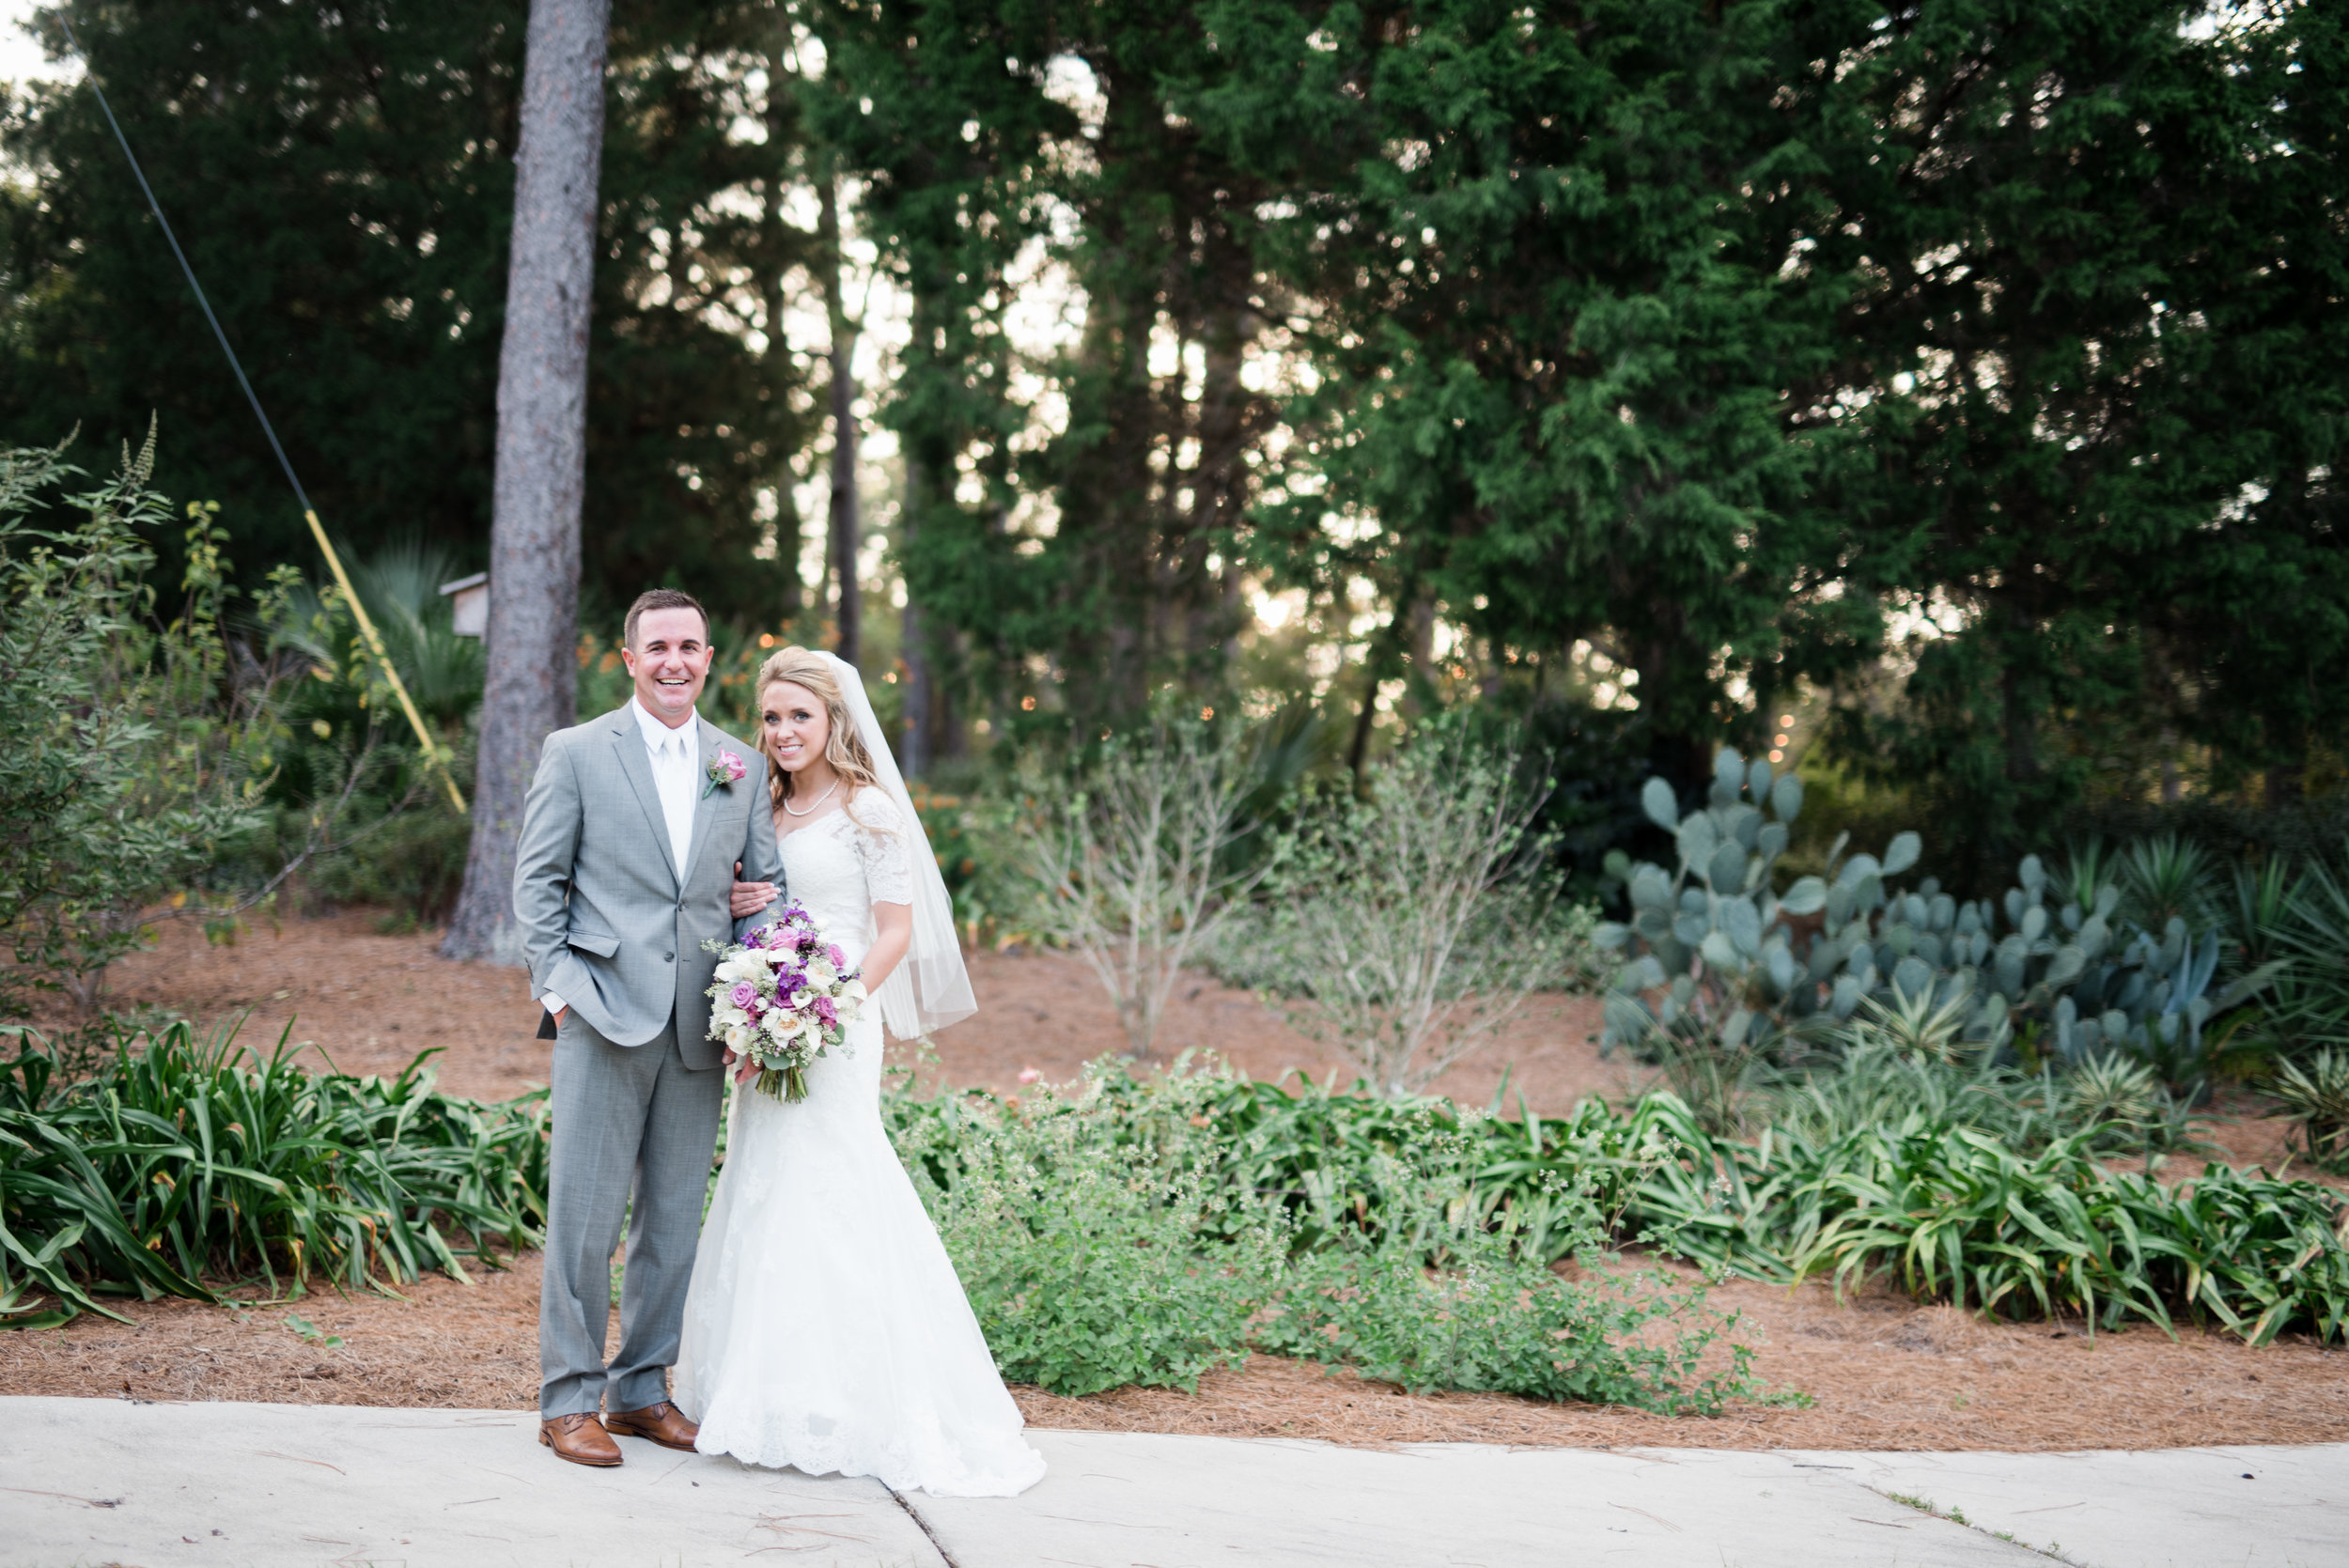 Church Wedding + Mobile Botanical Gardens Reception Photographed by Kristen Grubb Photography